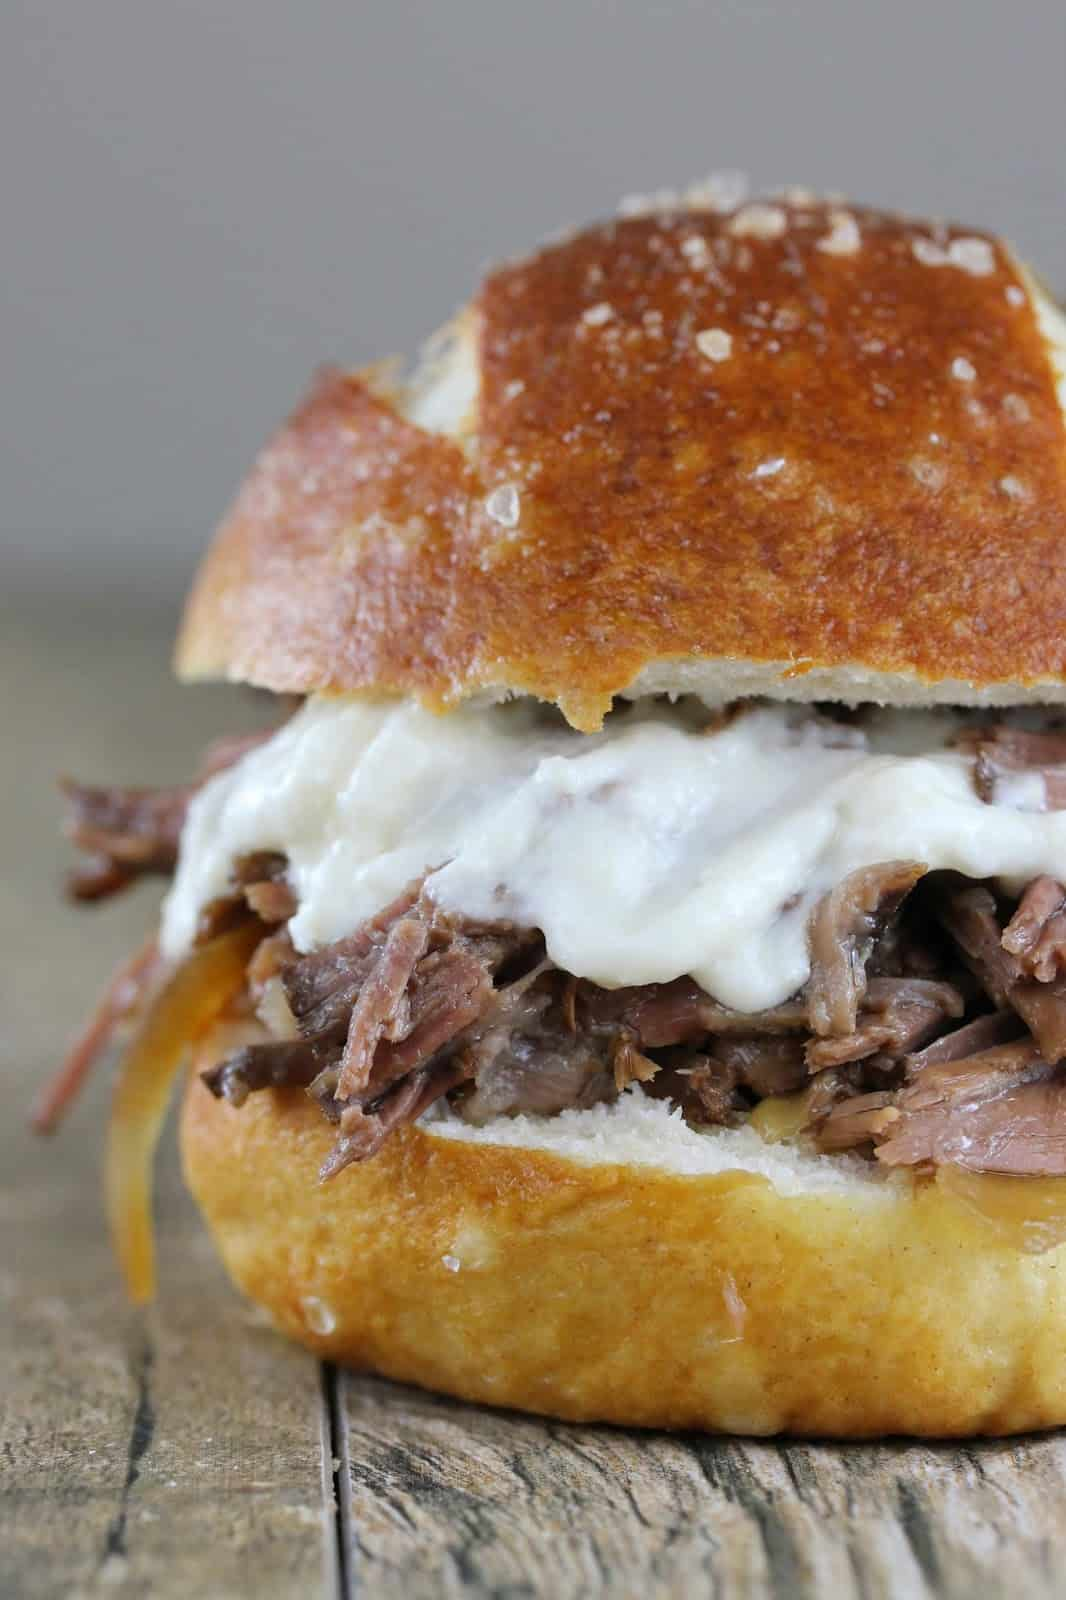 Close up of Shredded Beef and Horseradish Sandwich on a wood counter.